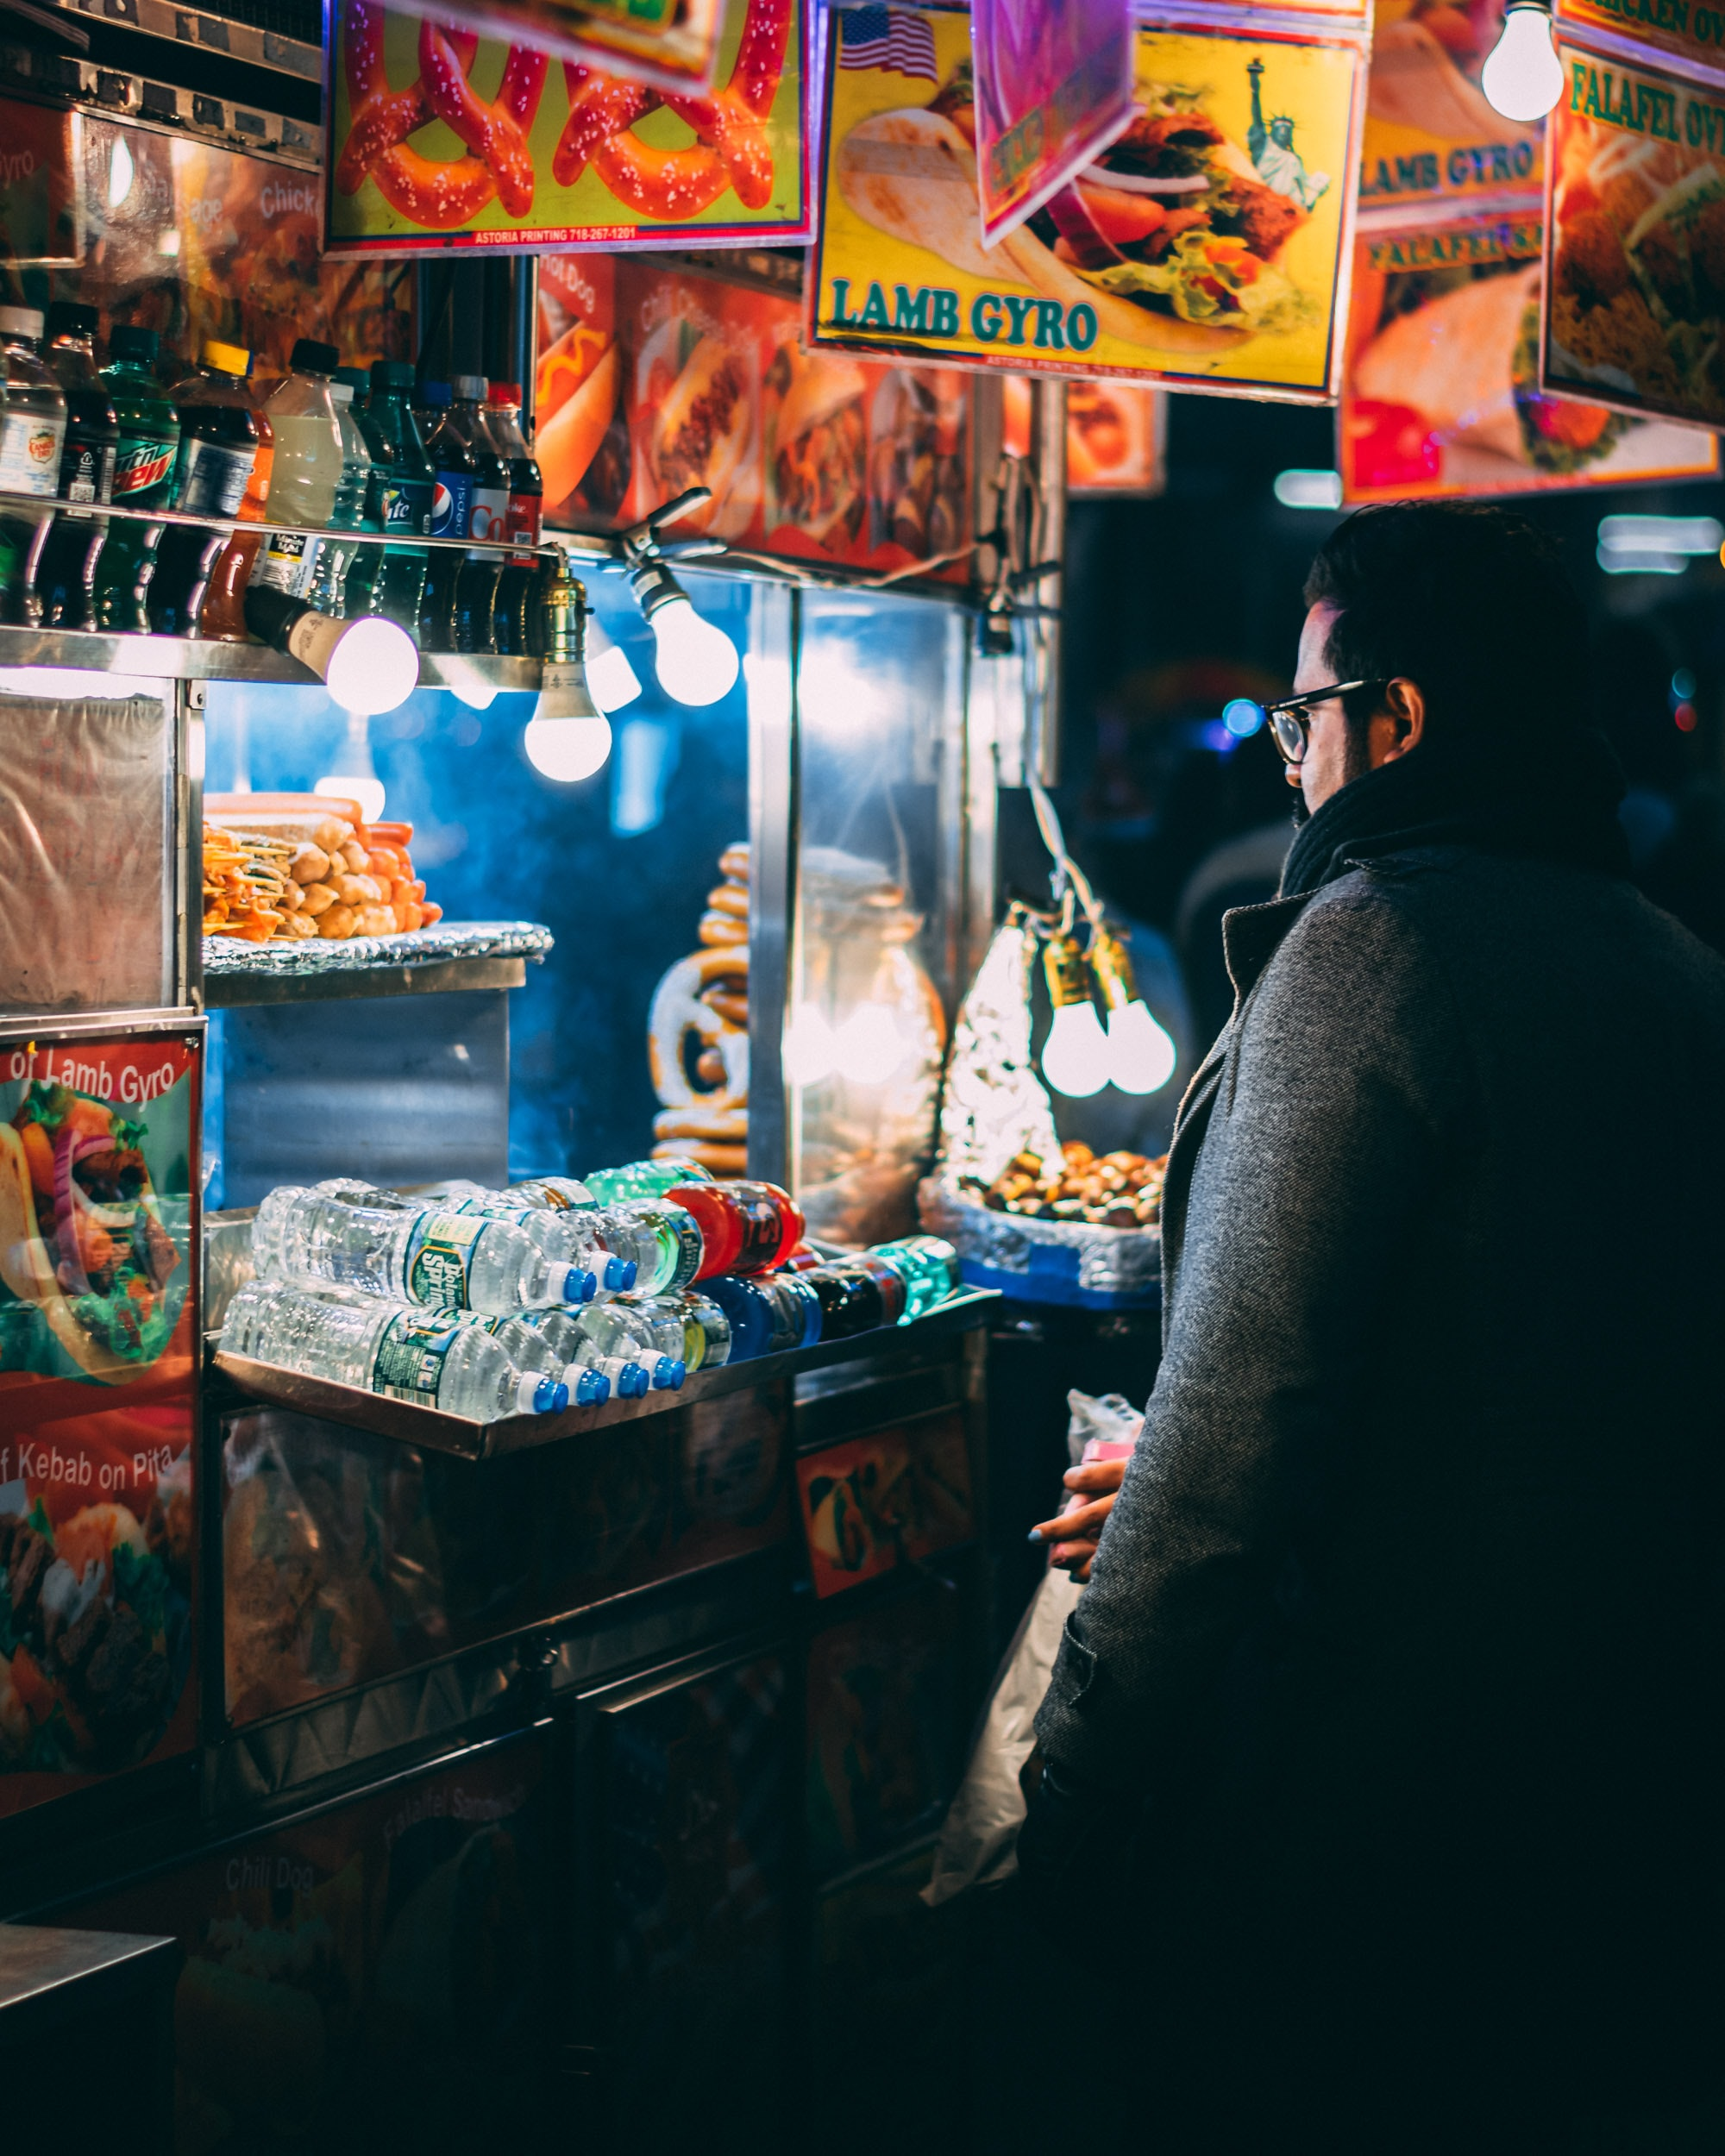 man with coat standing in front of food cart during nighttime